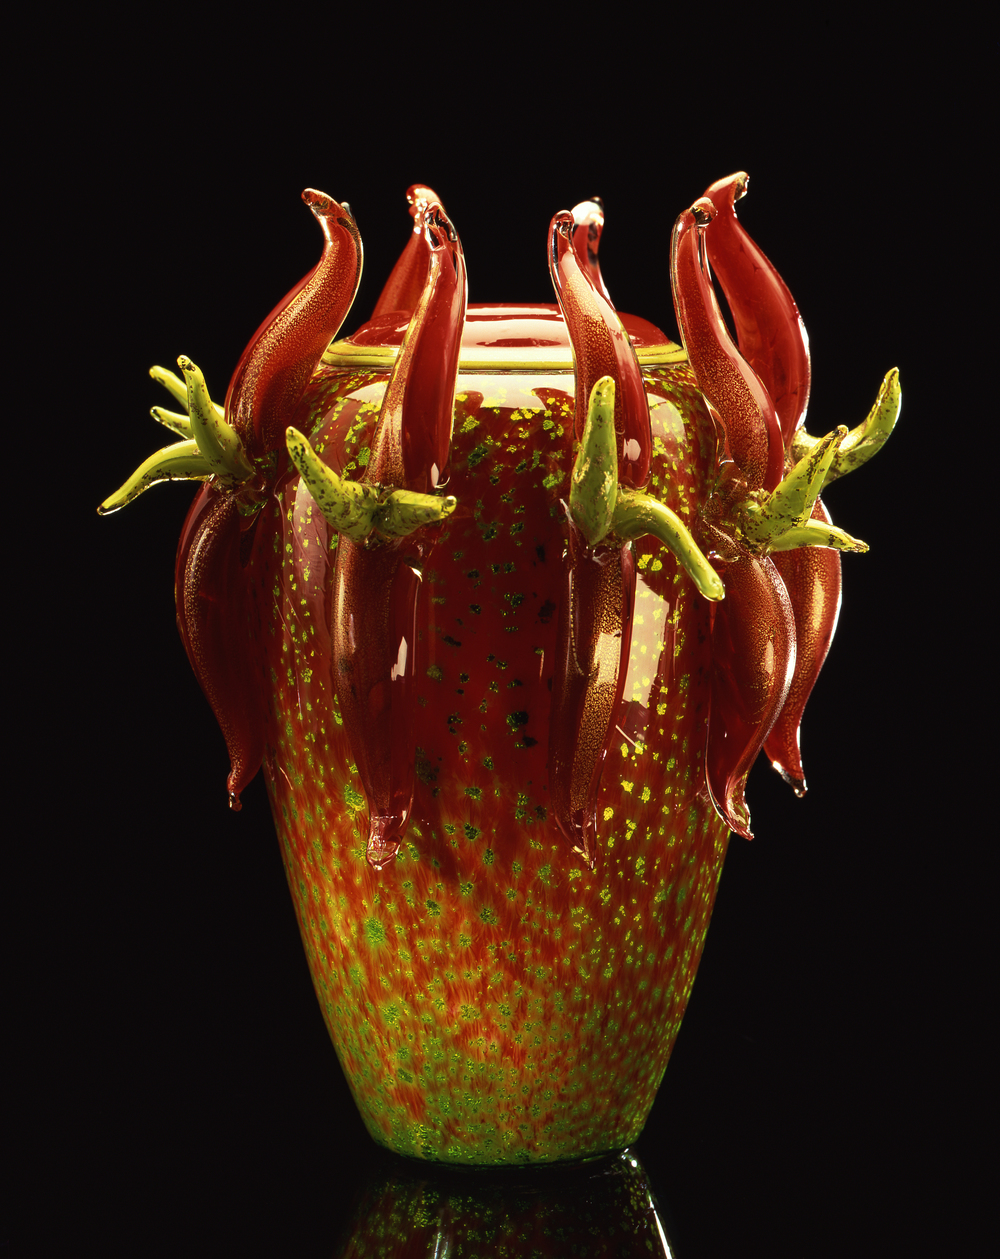 Dale Chihuly,  Green and Red Piccolo Venetian with Red Handles  (1990, glass, 9 x 7 x 7 inches)